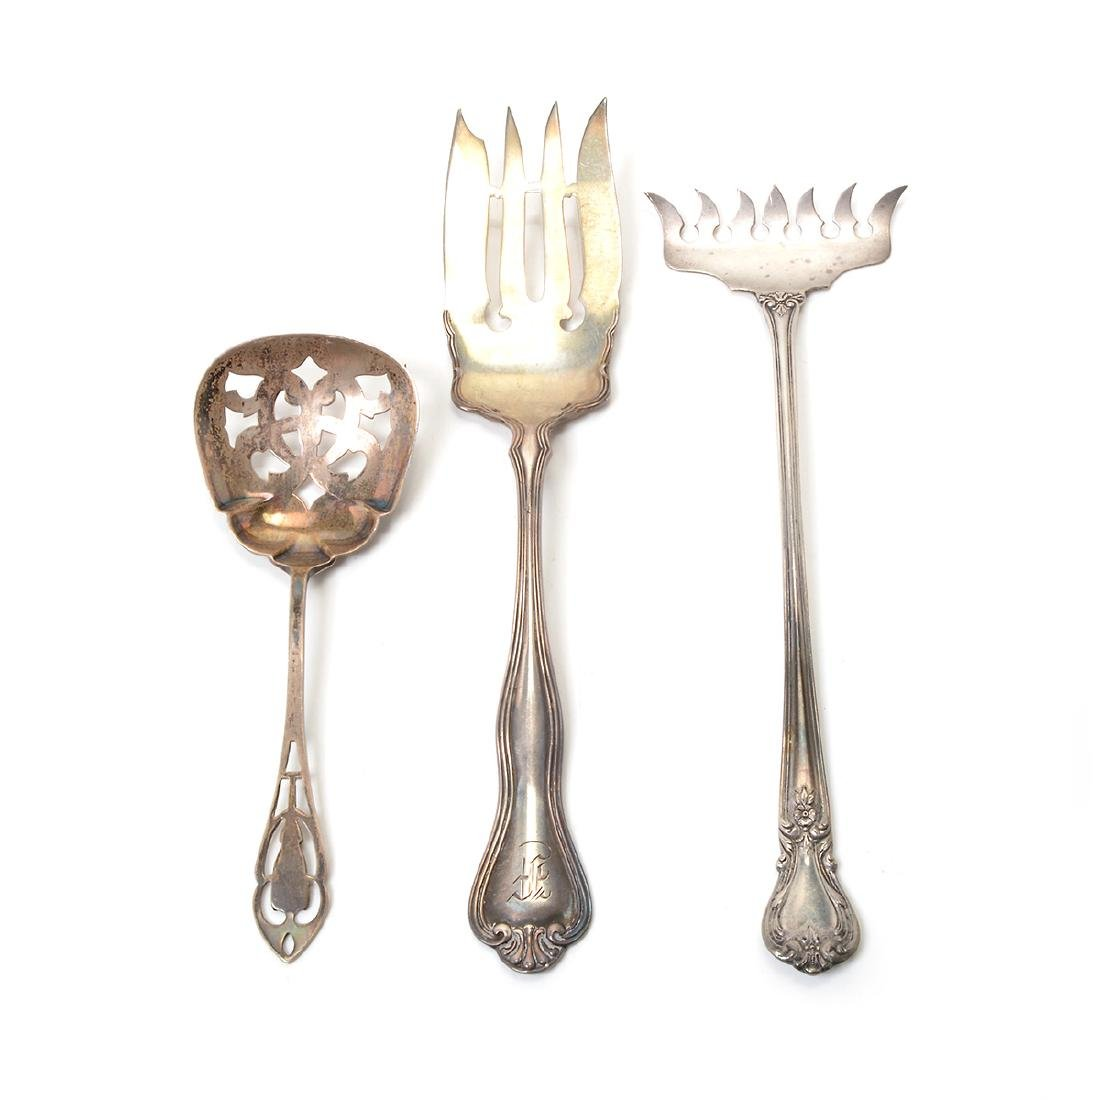 Collection of Assorted Sterling Flatware and Table - 4